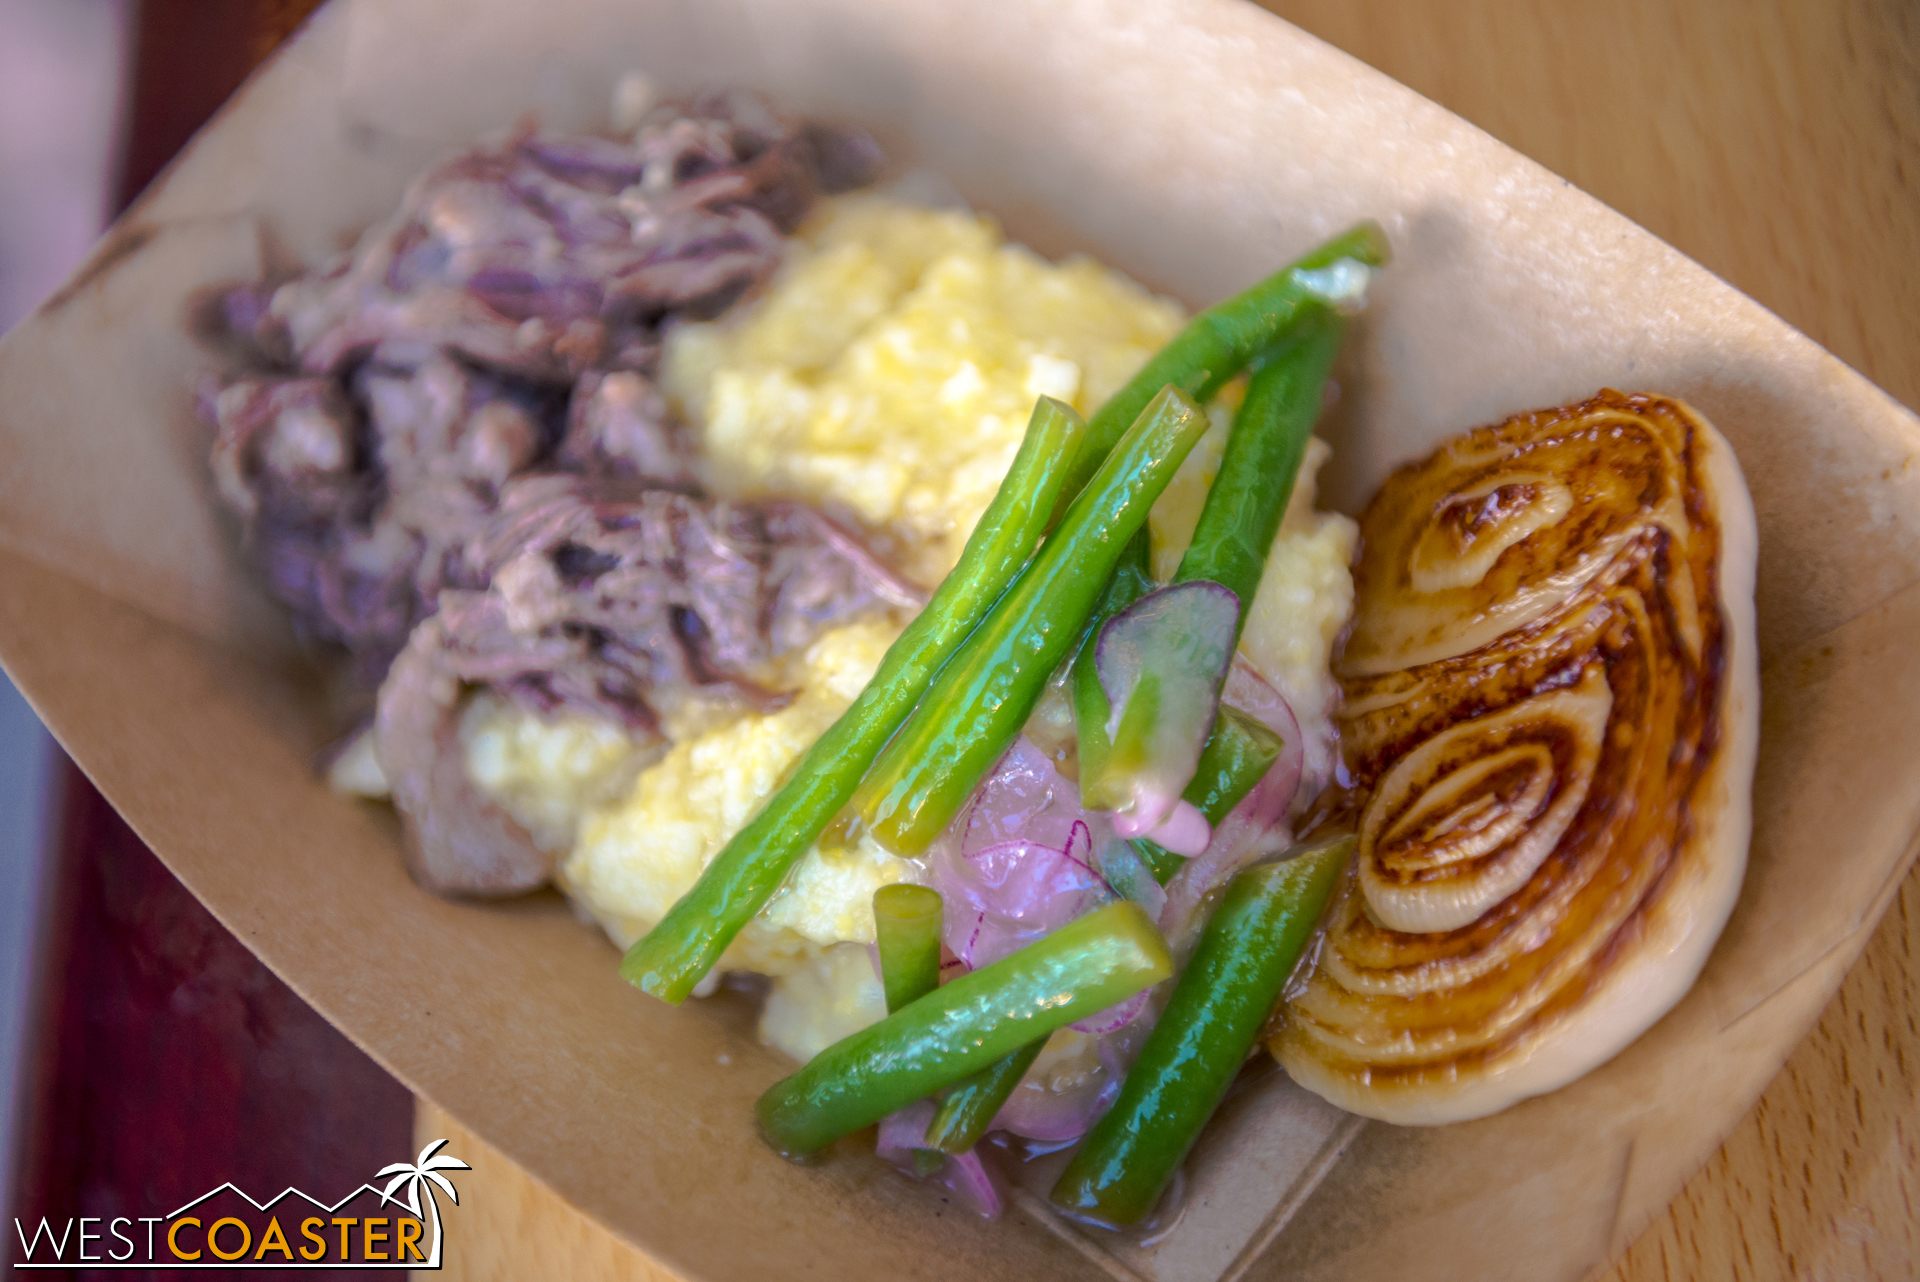 From The Onion Lair:  Braised Wagyu Beef on Creamy Polenta  with Haricot Vert-Red Onion Salad and Roasted Cipollini Onion featuring Melissa's® Produce ($7.75)